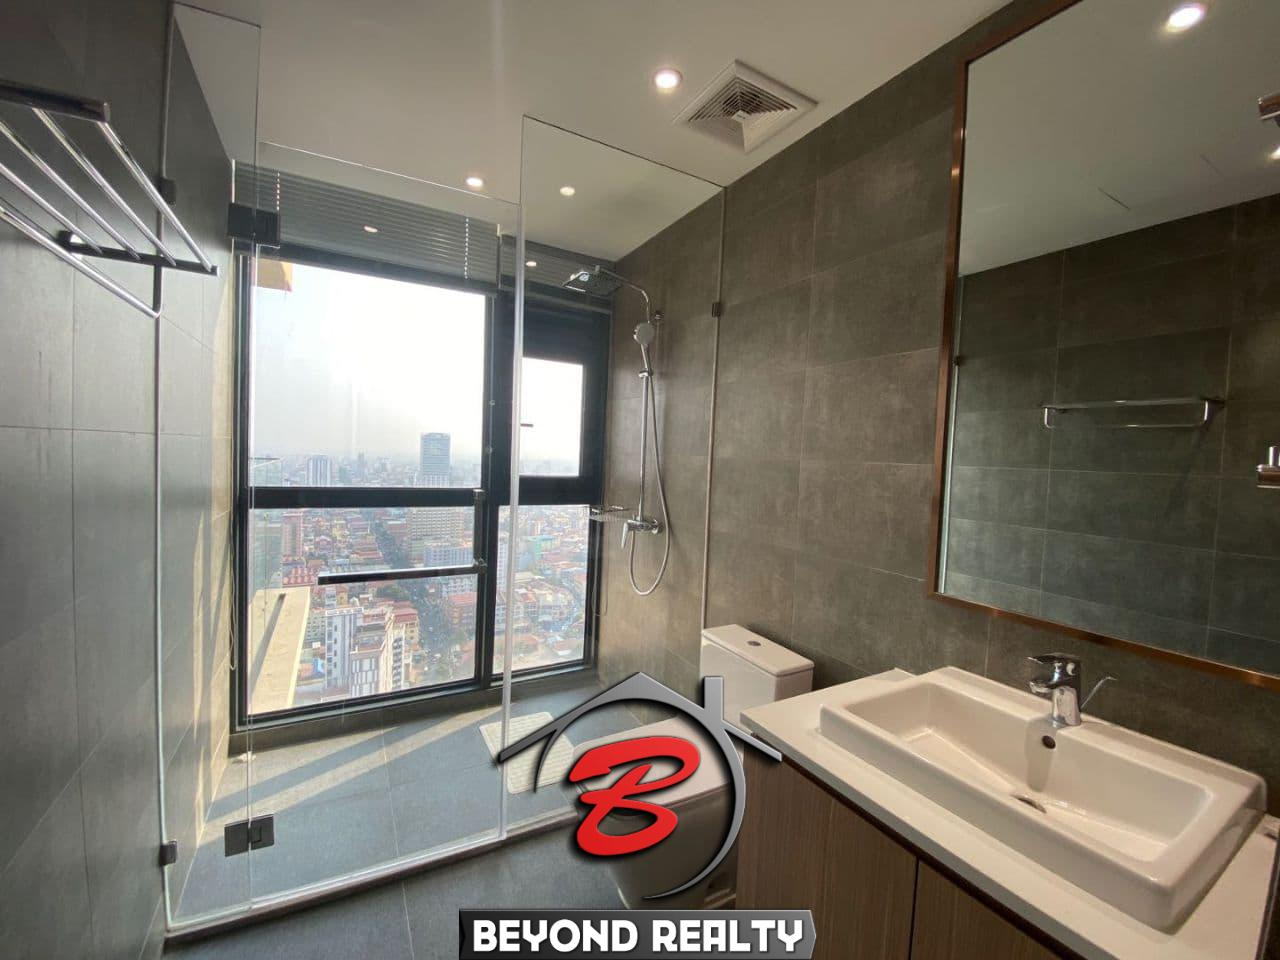 a bethroom of the 3-bedroom luxury spacious serviced flat for rent